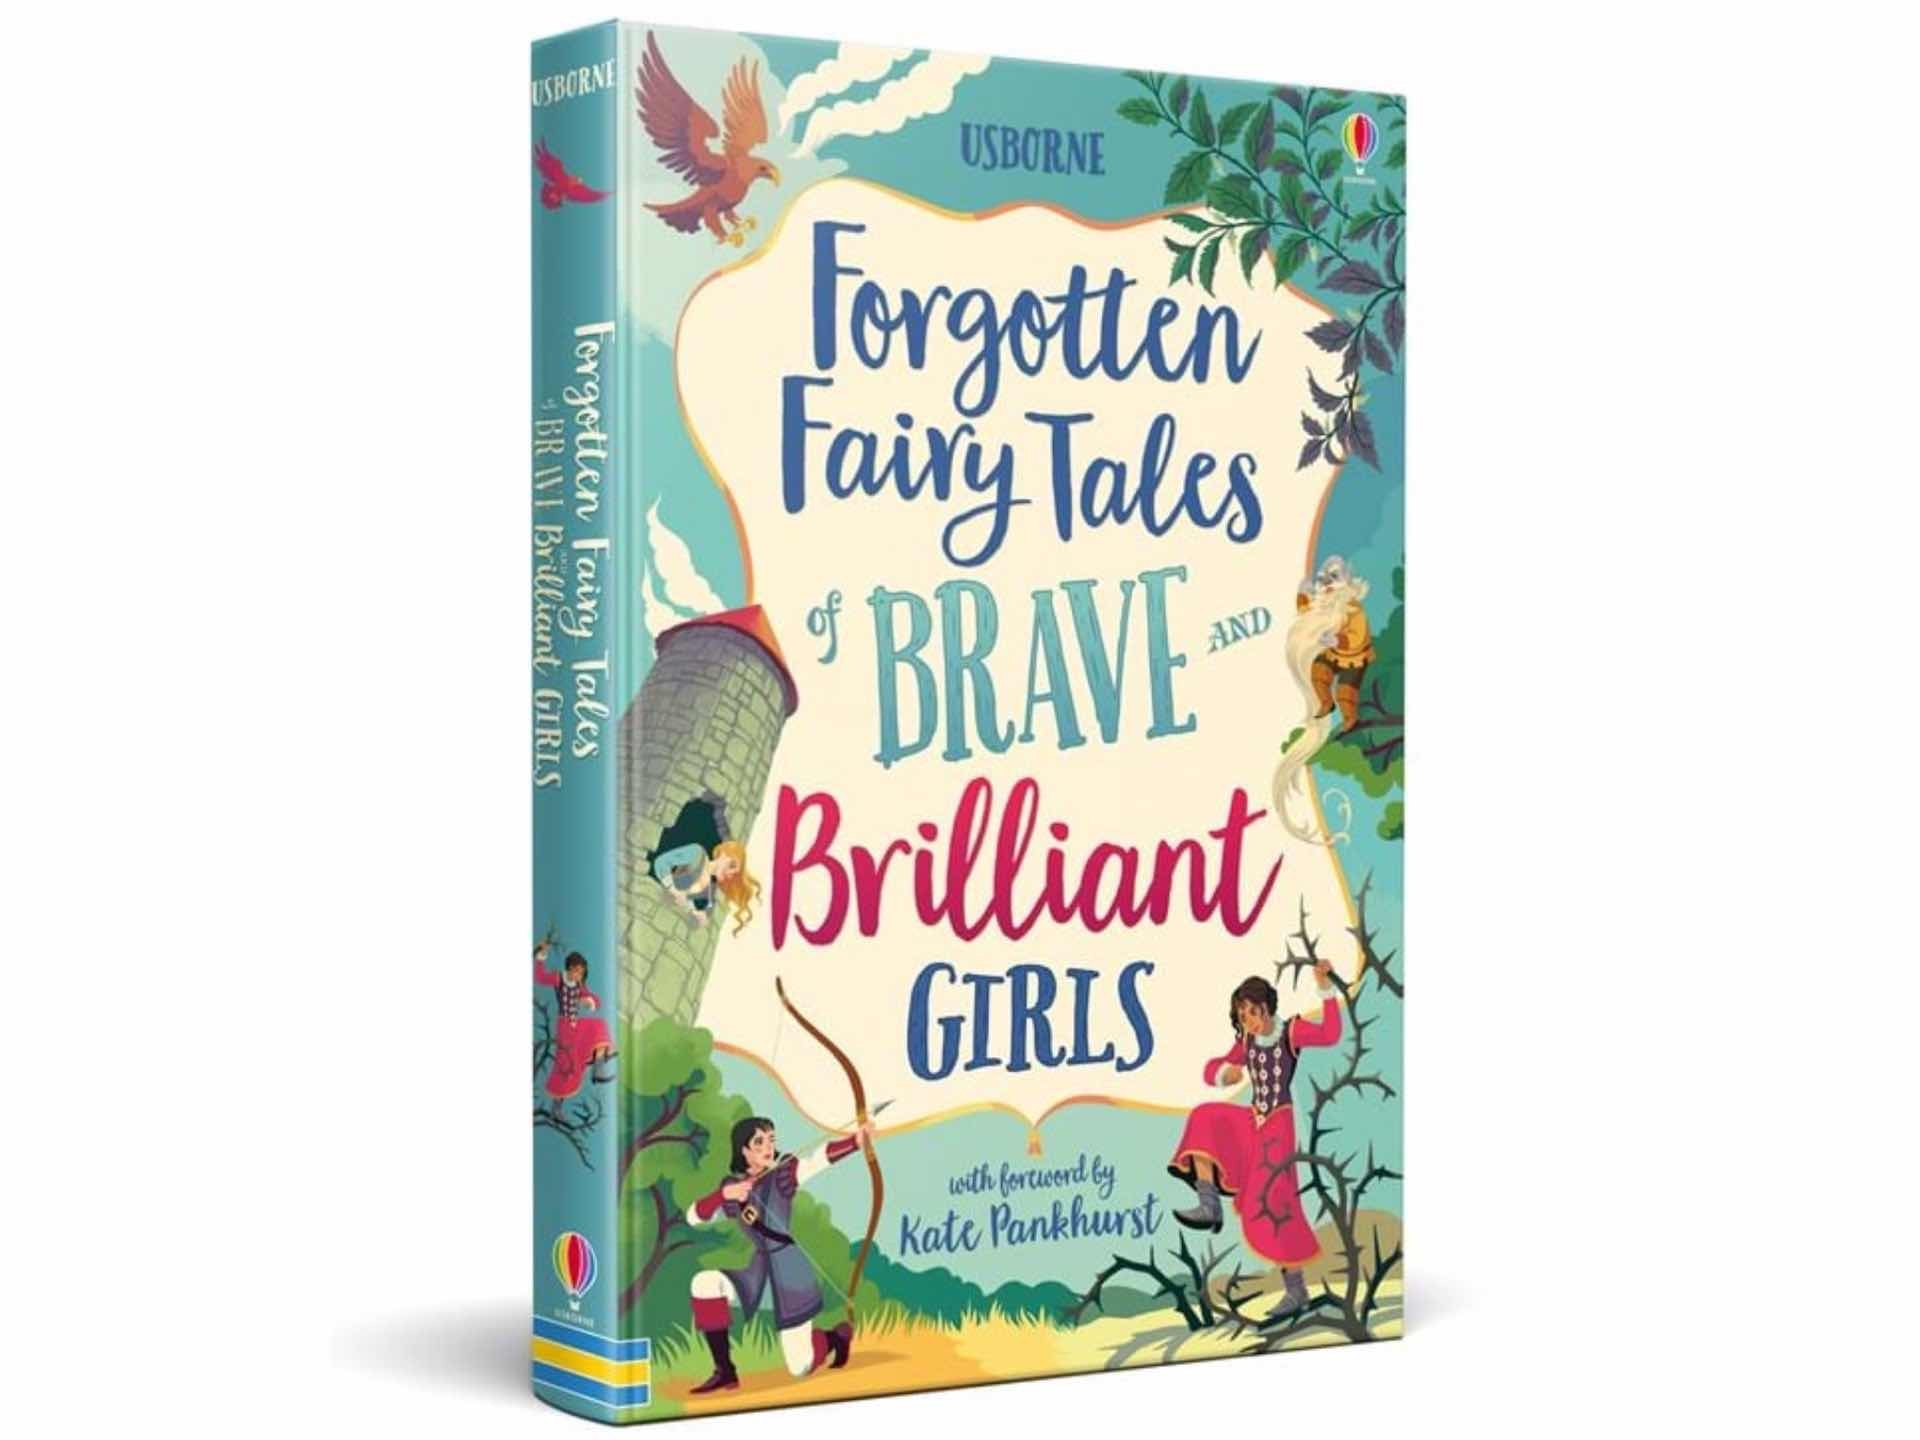 Usborne's Forgotten Fairy Tales of Brave and Brilliant Girls. ($20 hardcover)